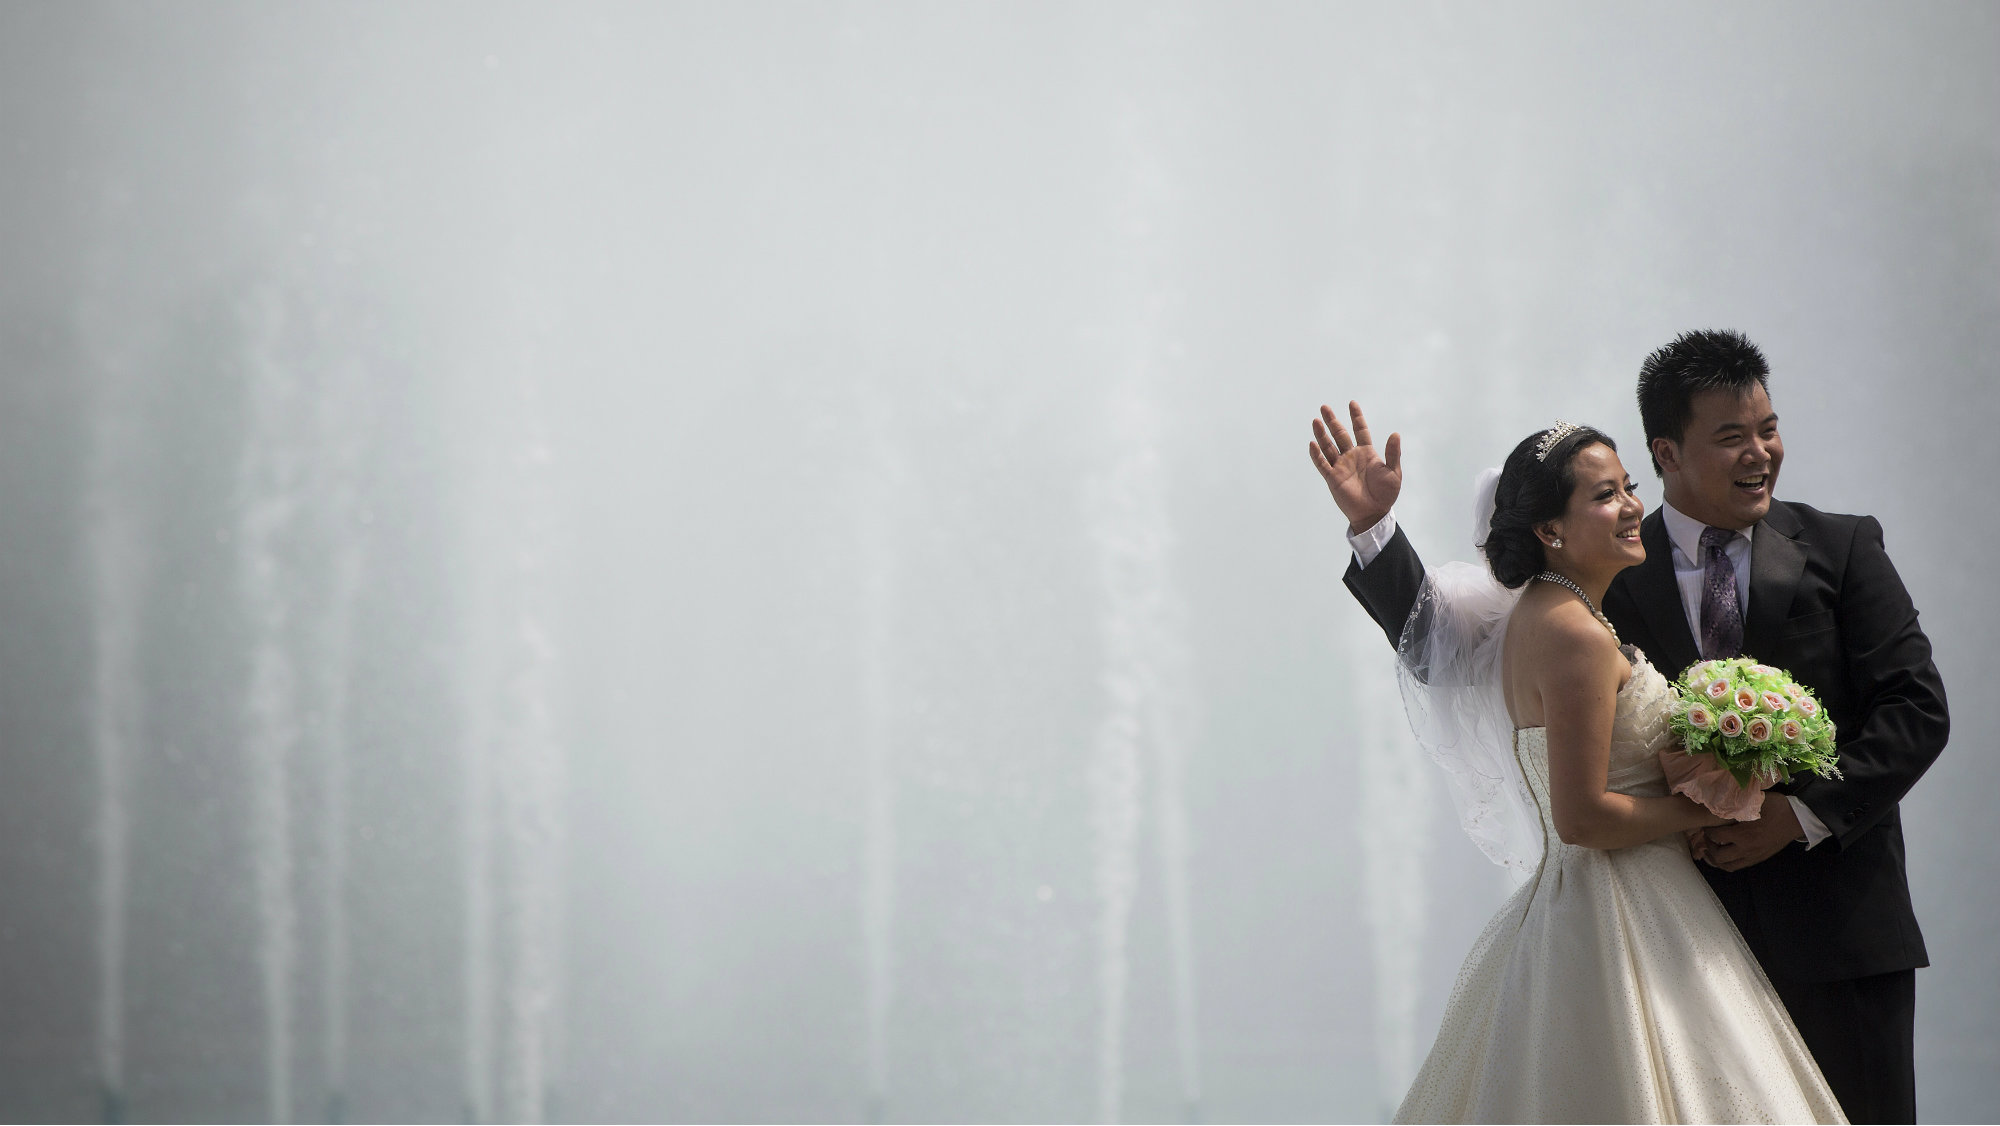 A bride and groom take pictures by the fountains of the Unisphere at Flushing Meadows Corona Park in the borough of Queens in New York July 9, 2013. REUTERS/Shannon Stapleton (UNITED STATES - Tags: SOCIETY ENVIRONMENT)